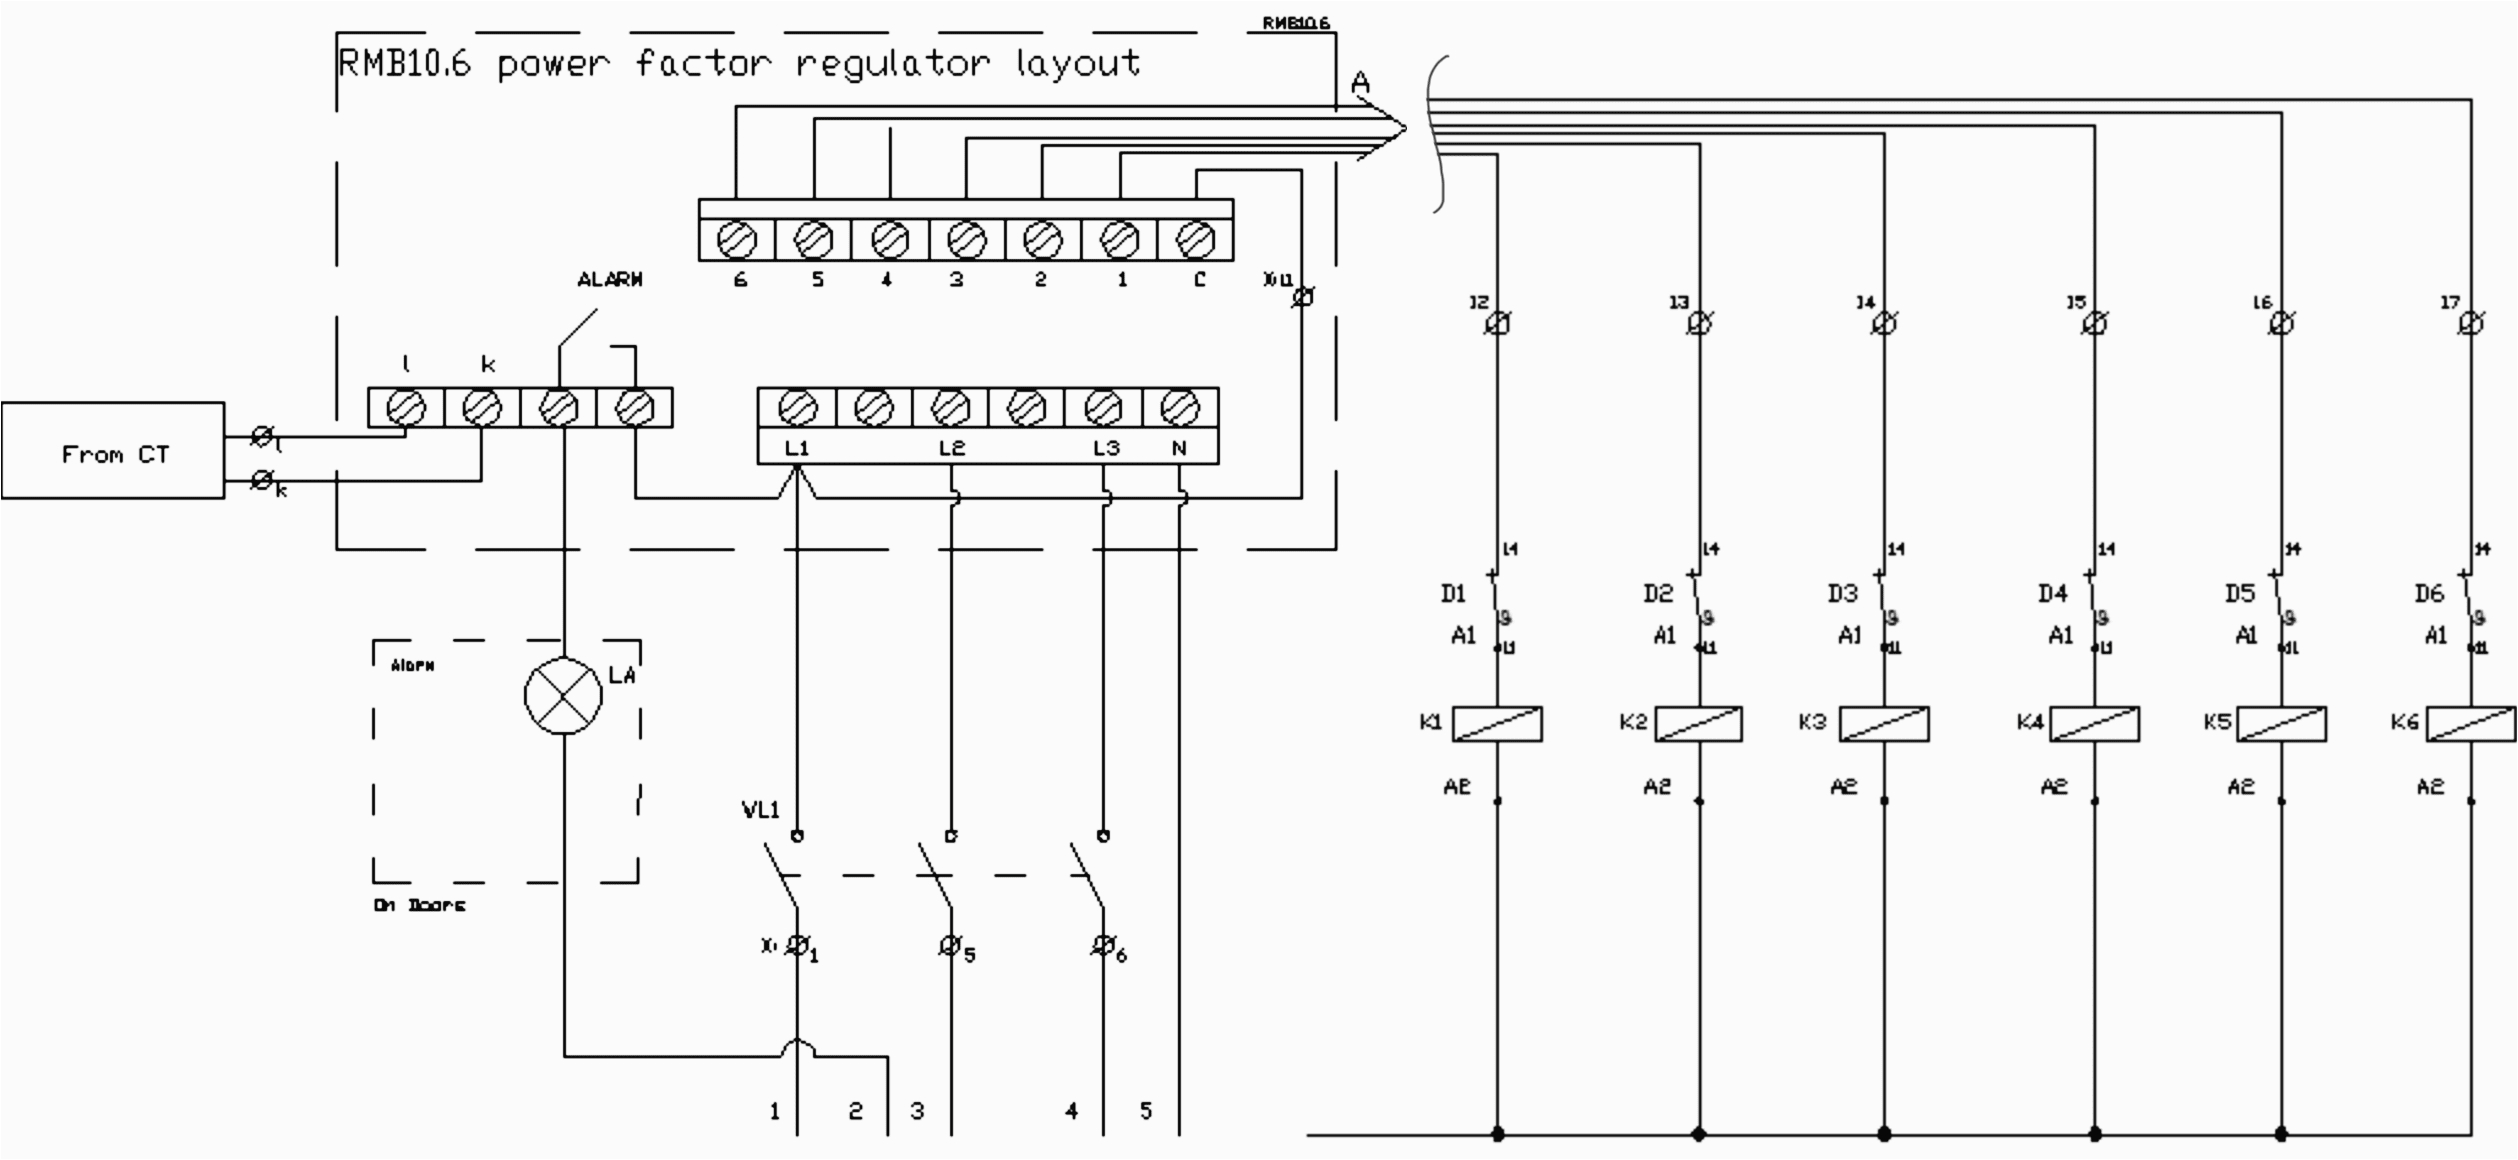 Resistive Load Bank Wiring Diagram Step by Step Tutorial for Building Capacitor Bank and Reactive Power